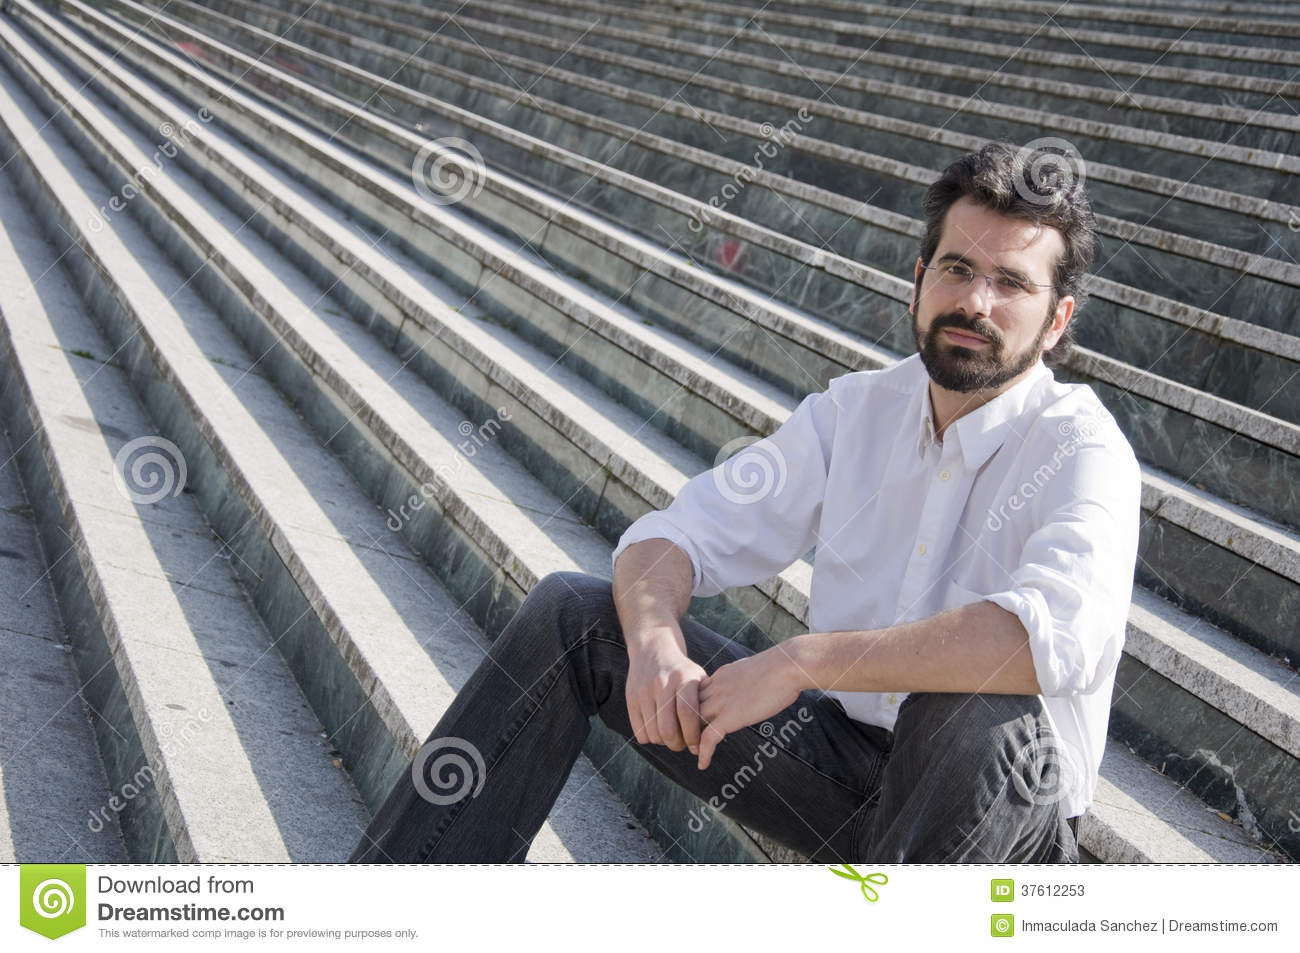 Man sitting in stairs